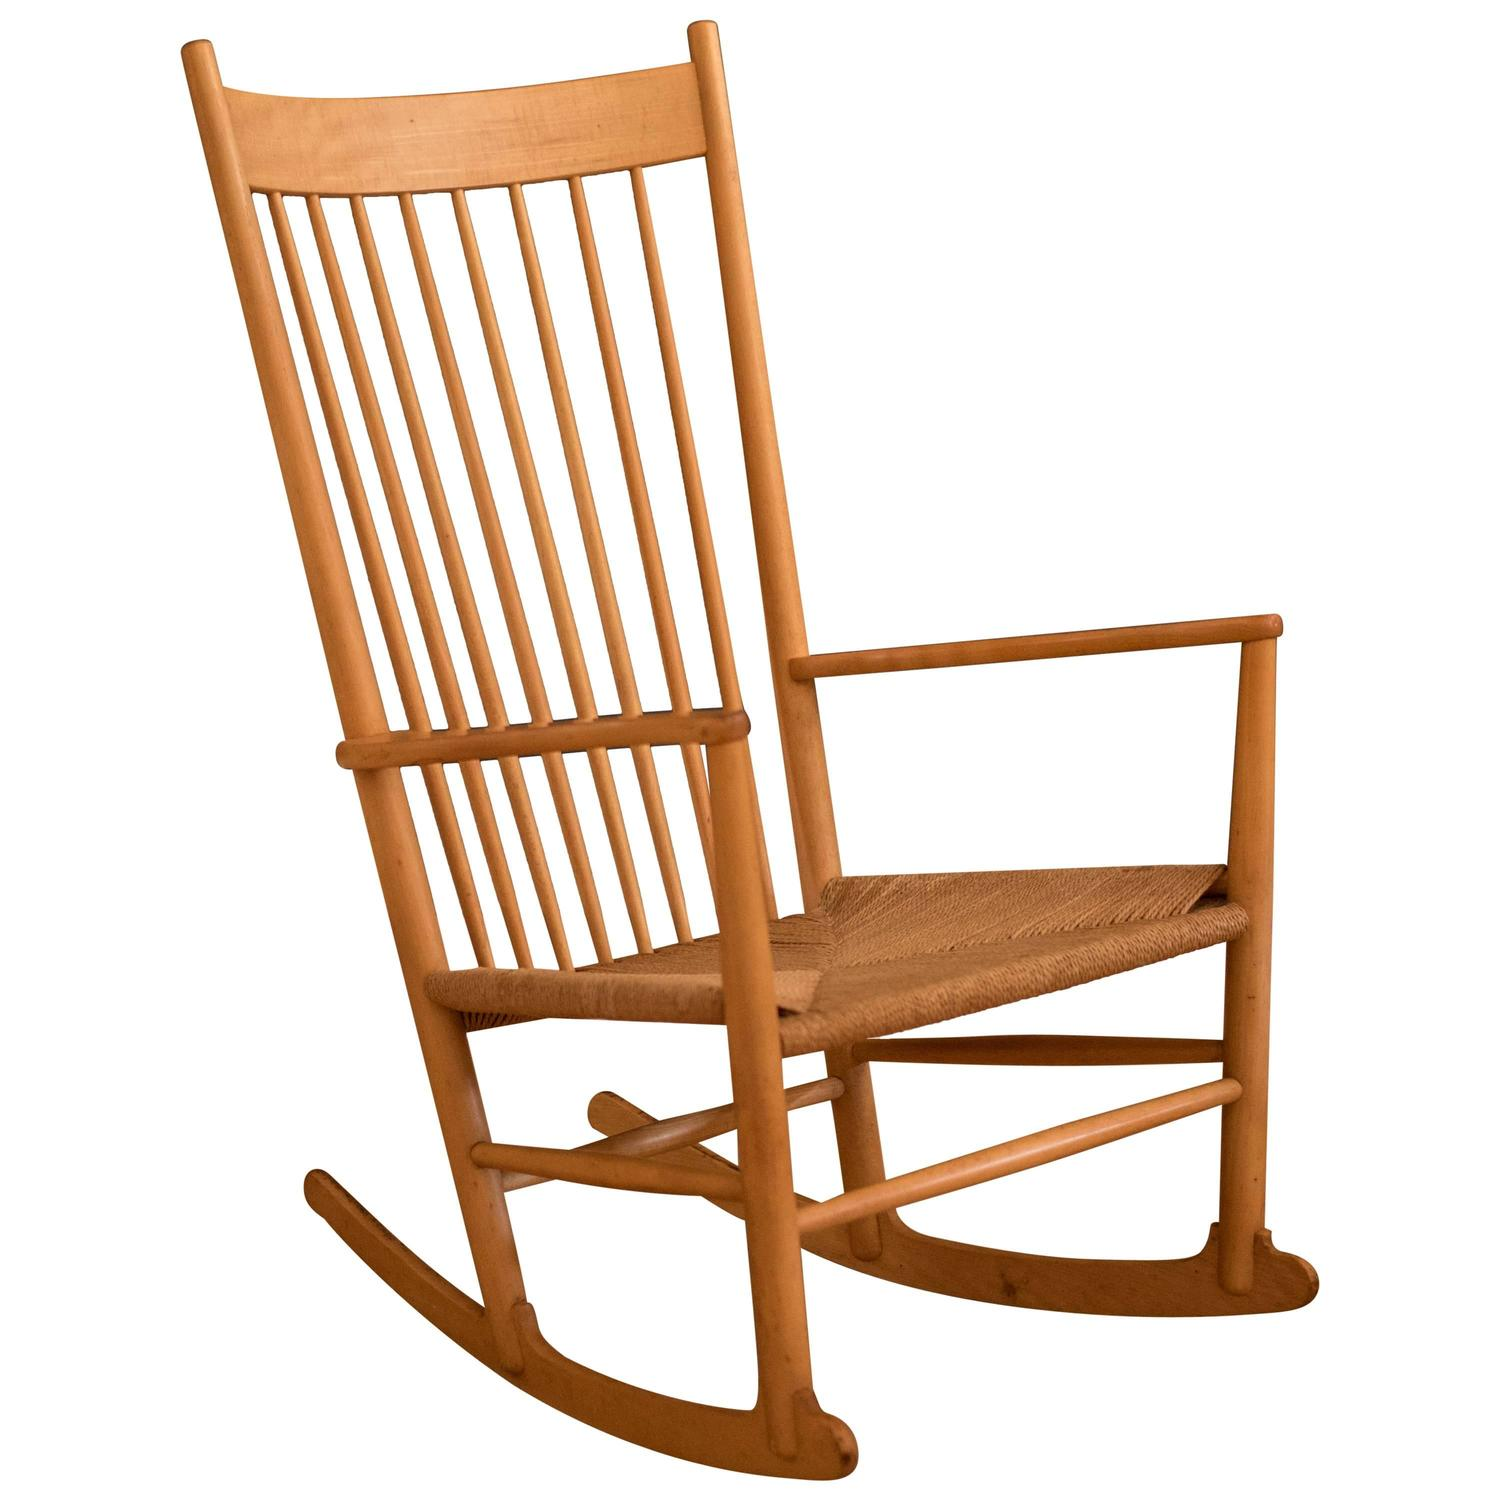 Vintage Danish Hans Wegner J-16 Rocker For Sale at 1stdibs